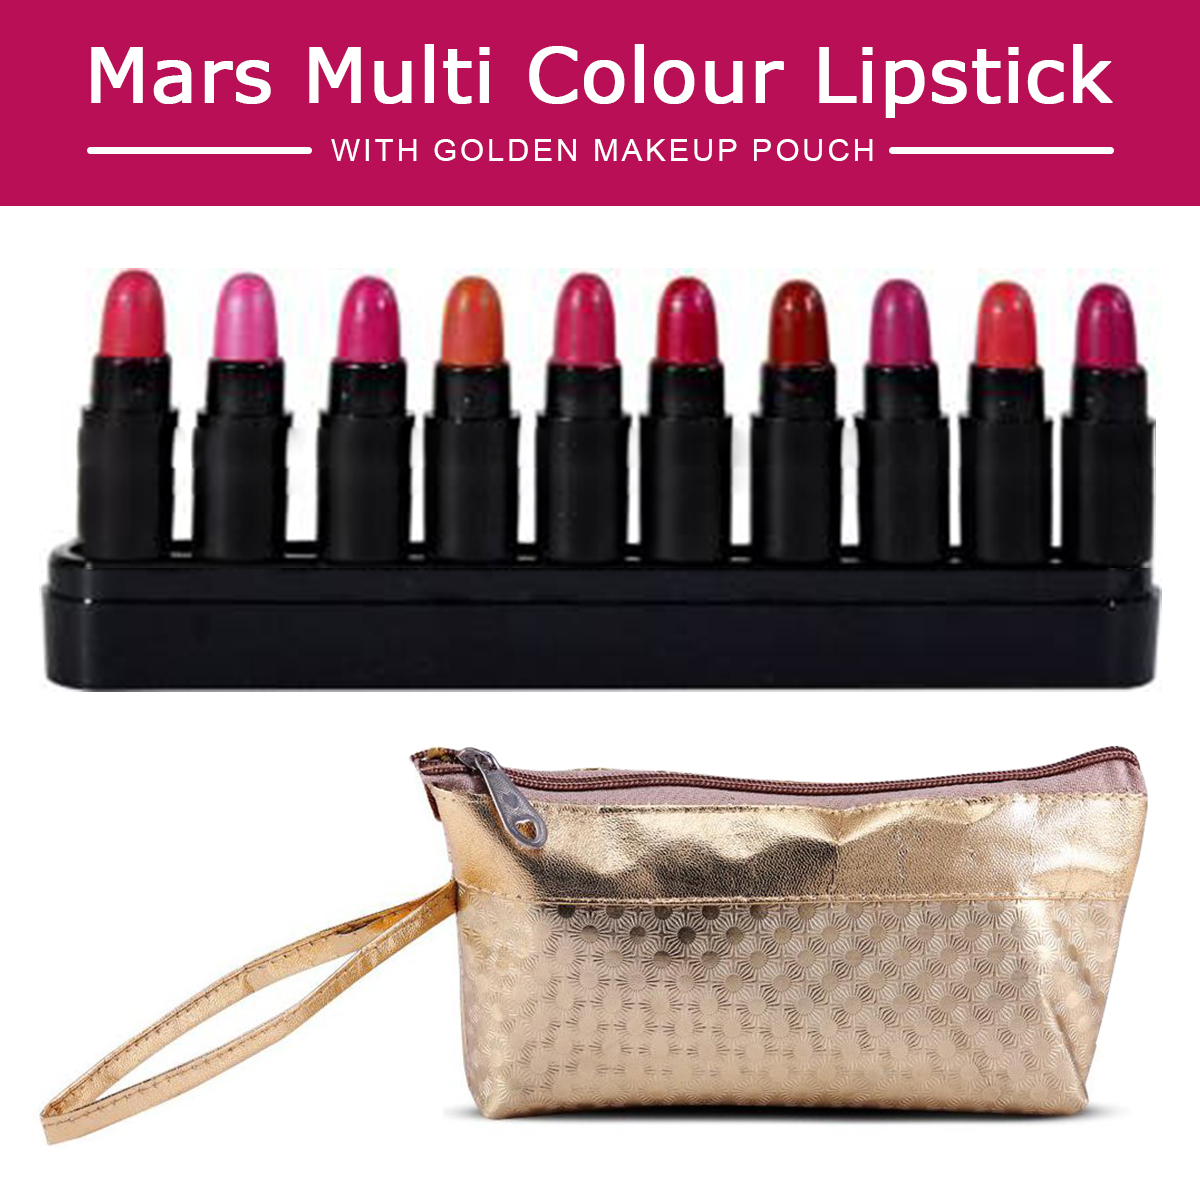 Mars Long Lasting Smooth Finish Lipsticks LS2-B Pack of 10  with Golden Makeup Pouch